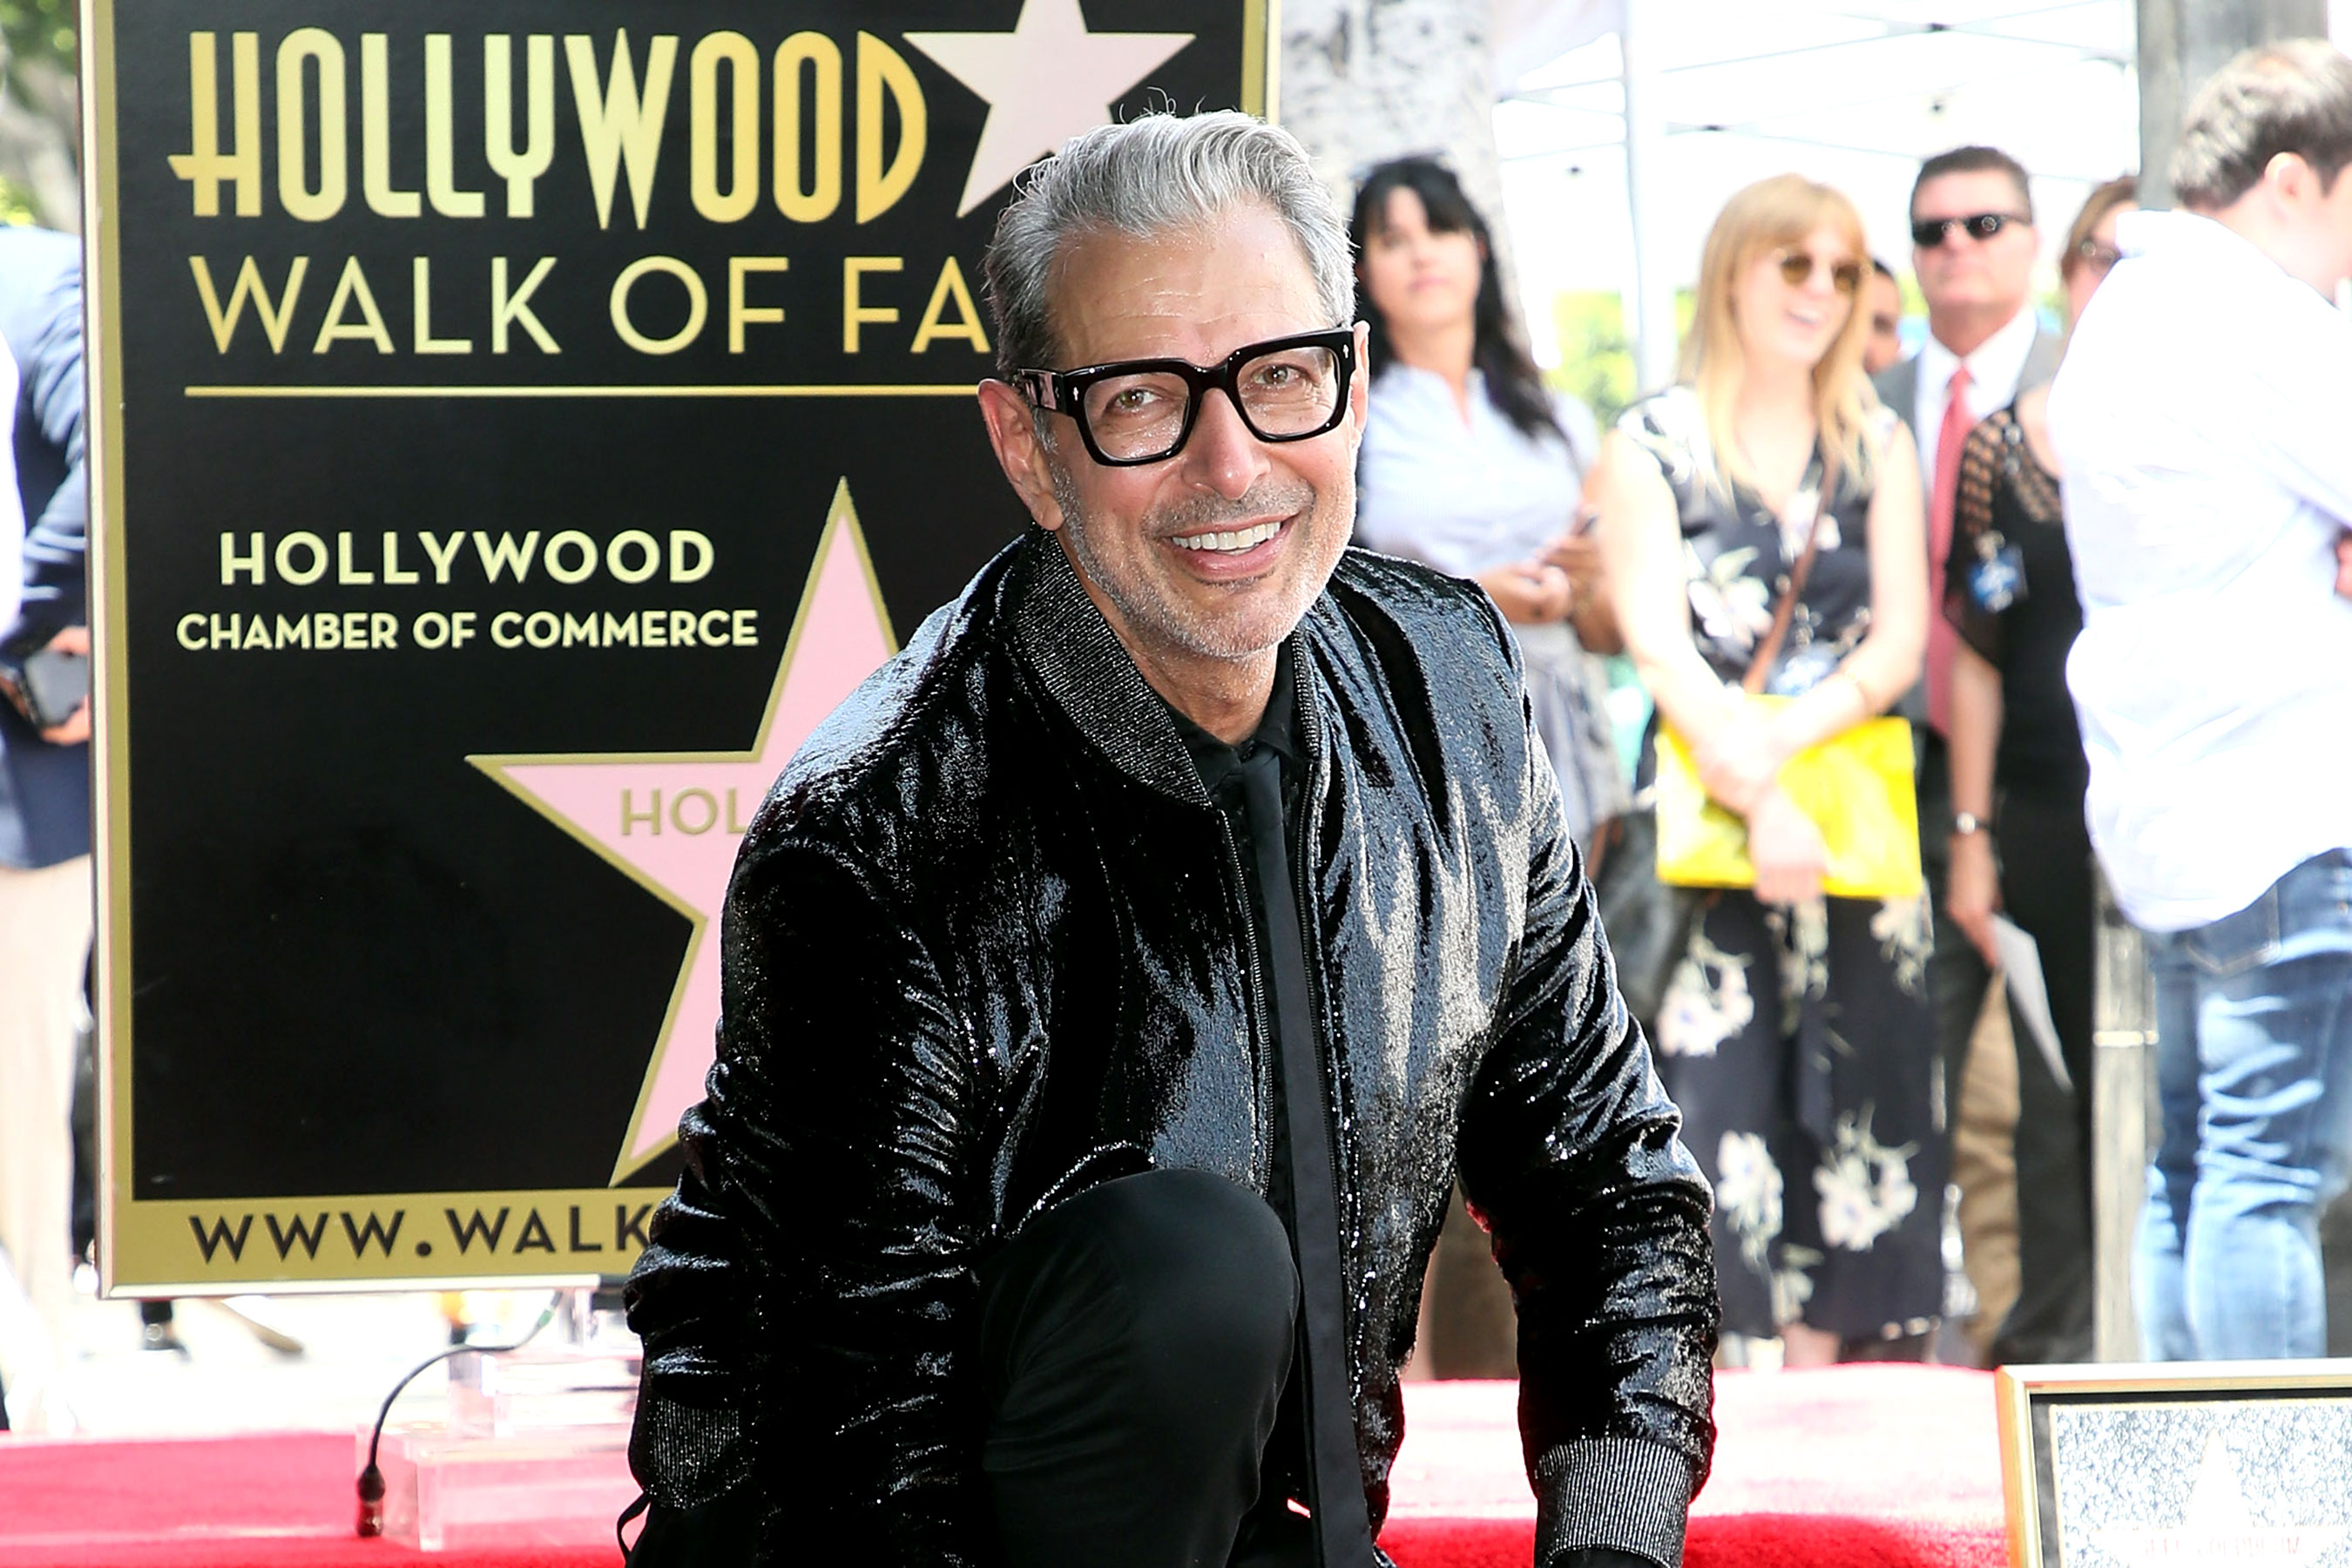 Jeff Goldblum riceve la stella sulla Hollywood Walk of Fame